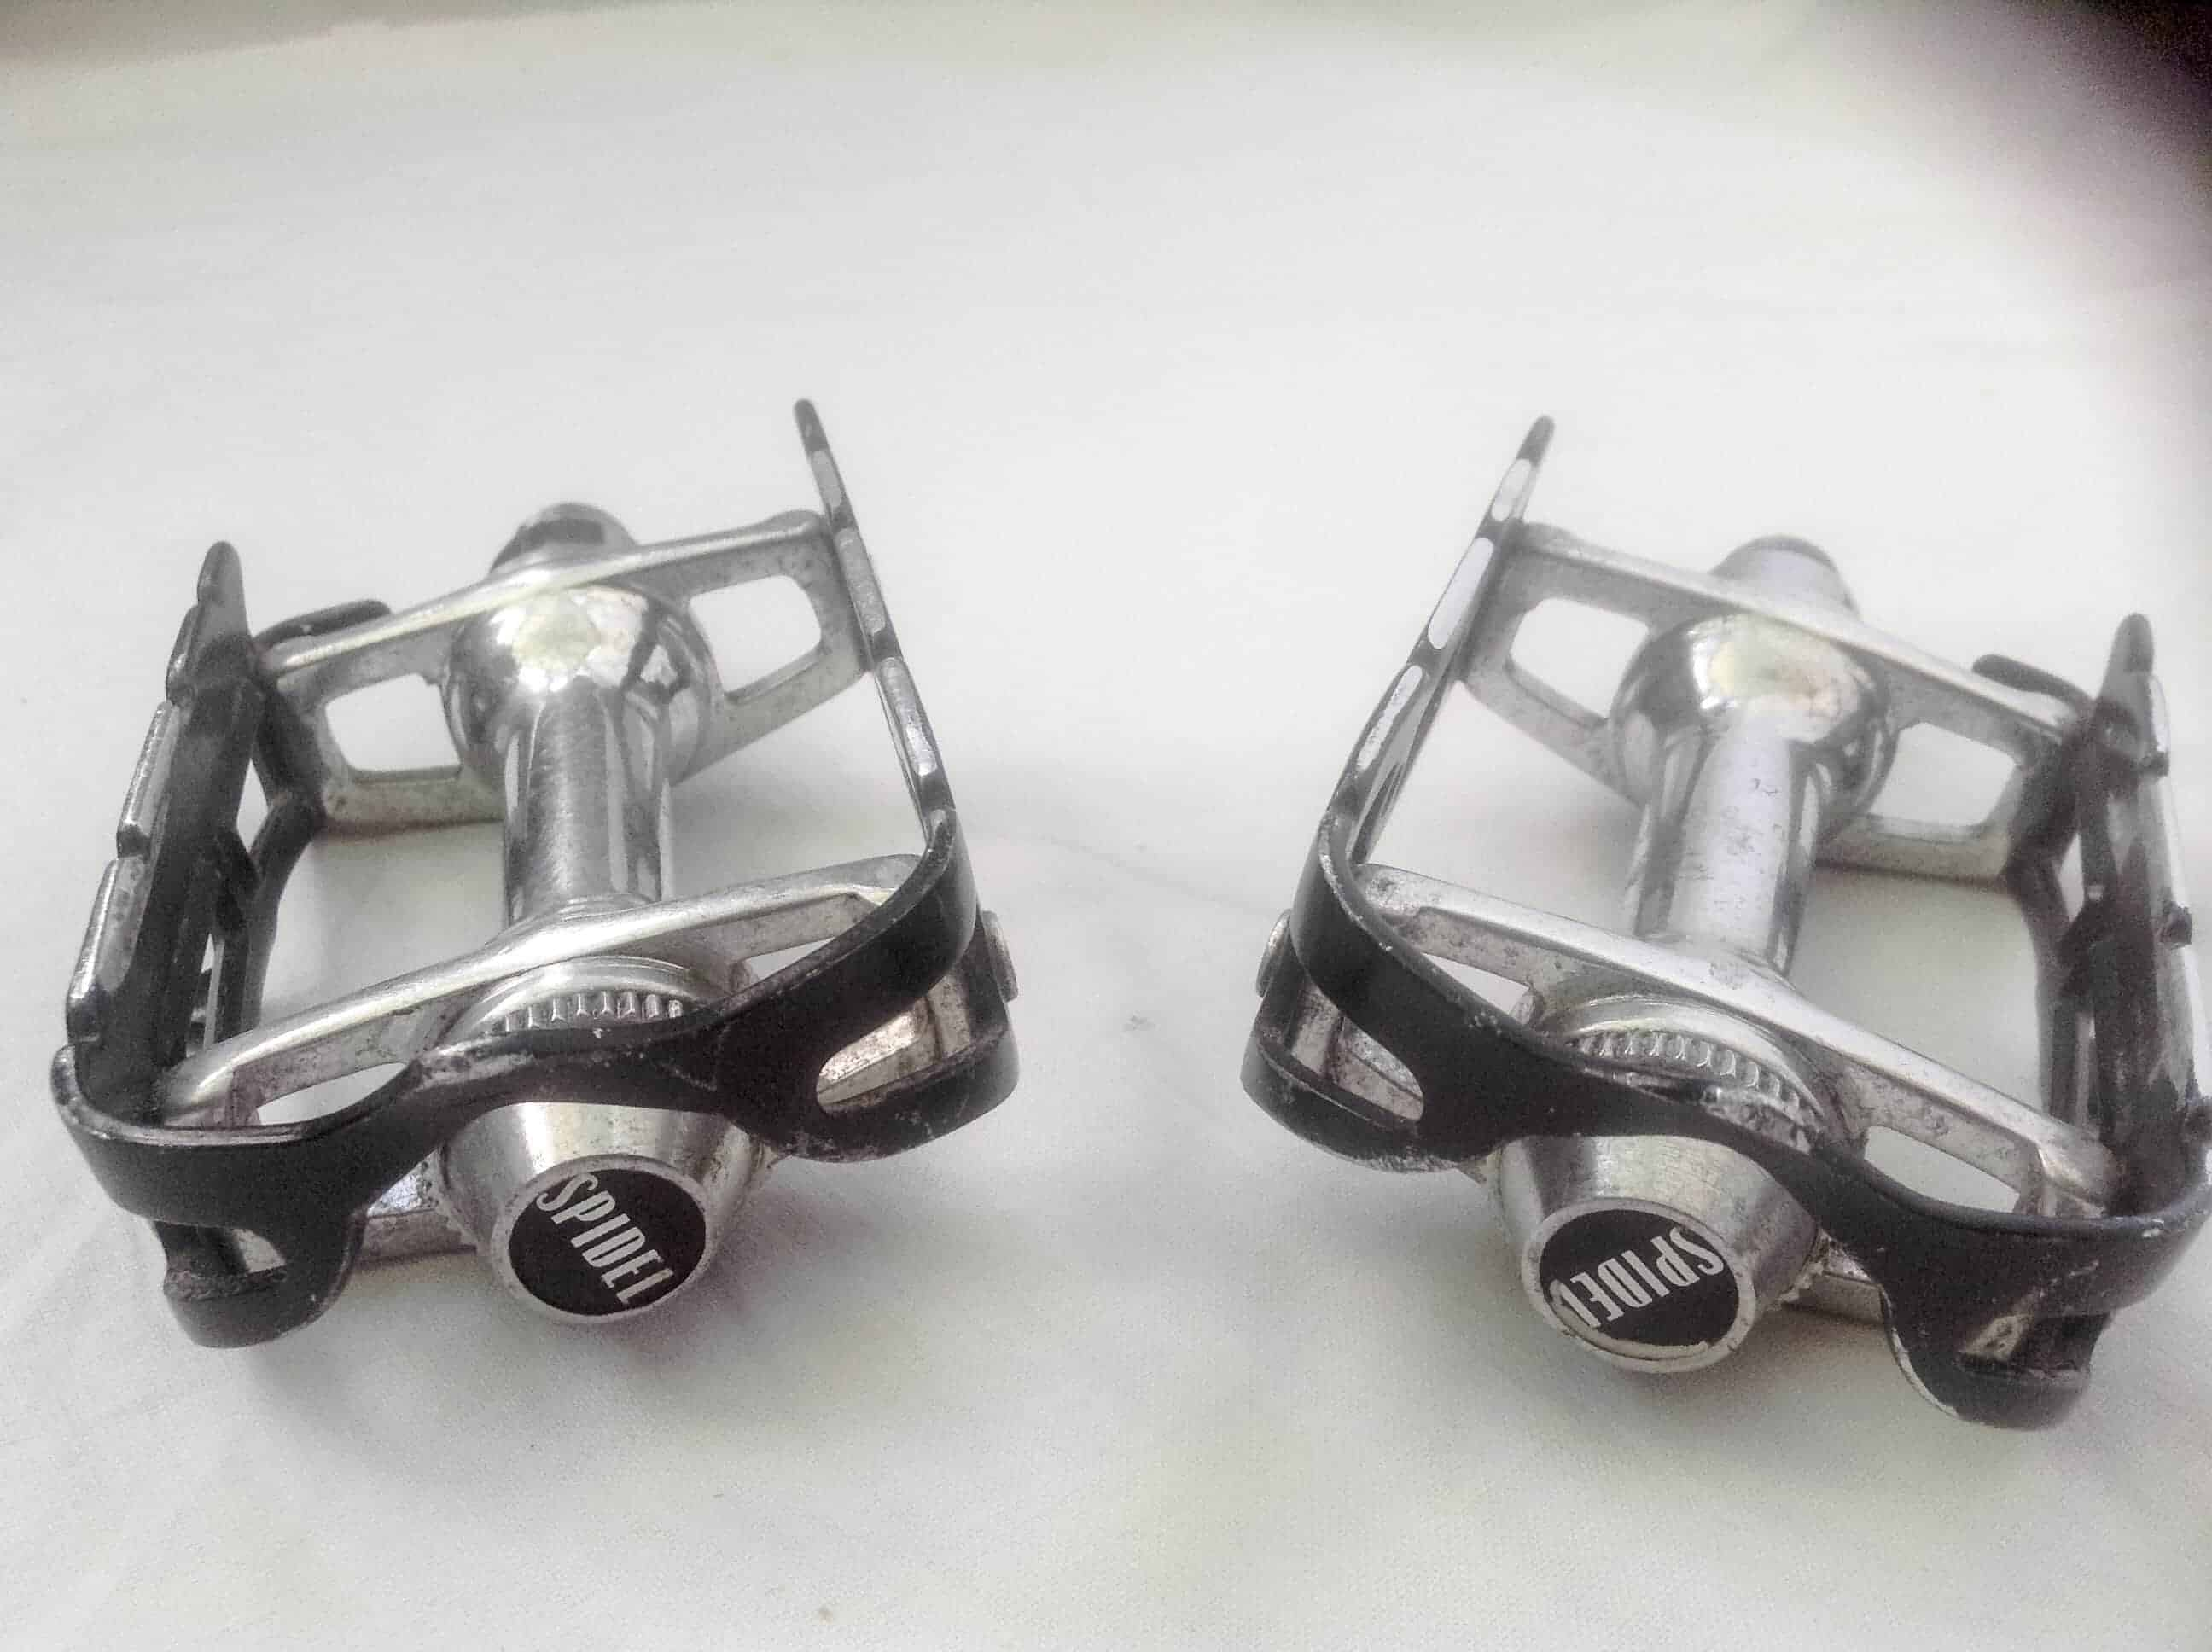 The Spiedel Pedals